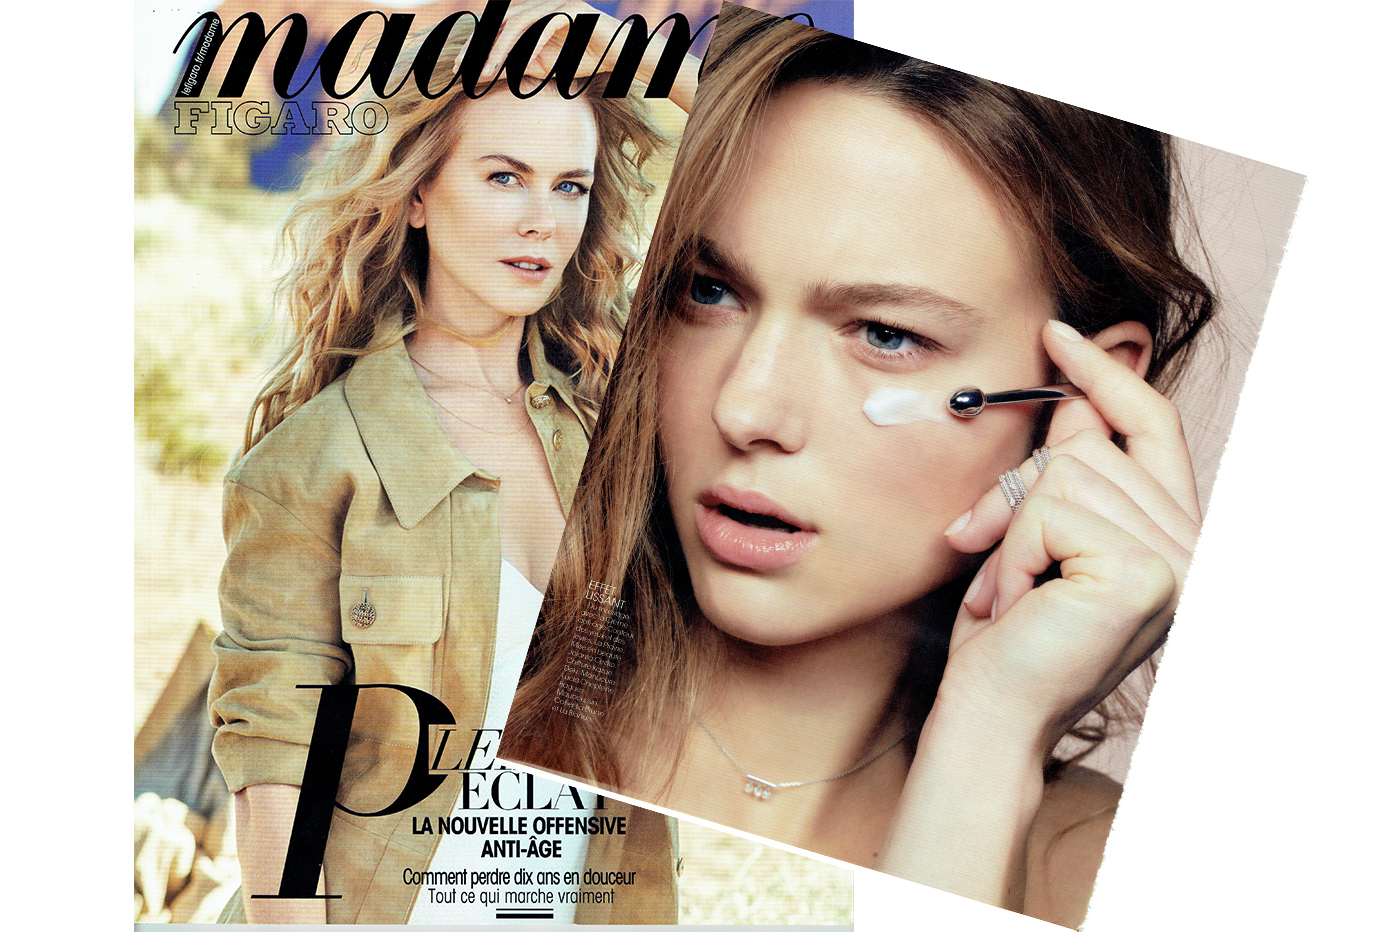 THE PAMPILLES NECKLACE IN THE BEAUTY PAGES – MADAME FIGARO